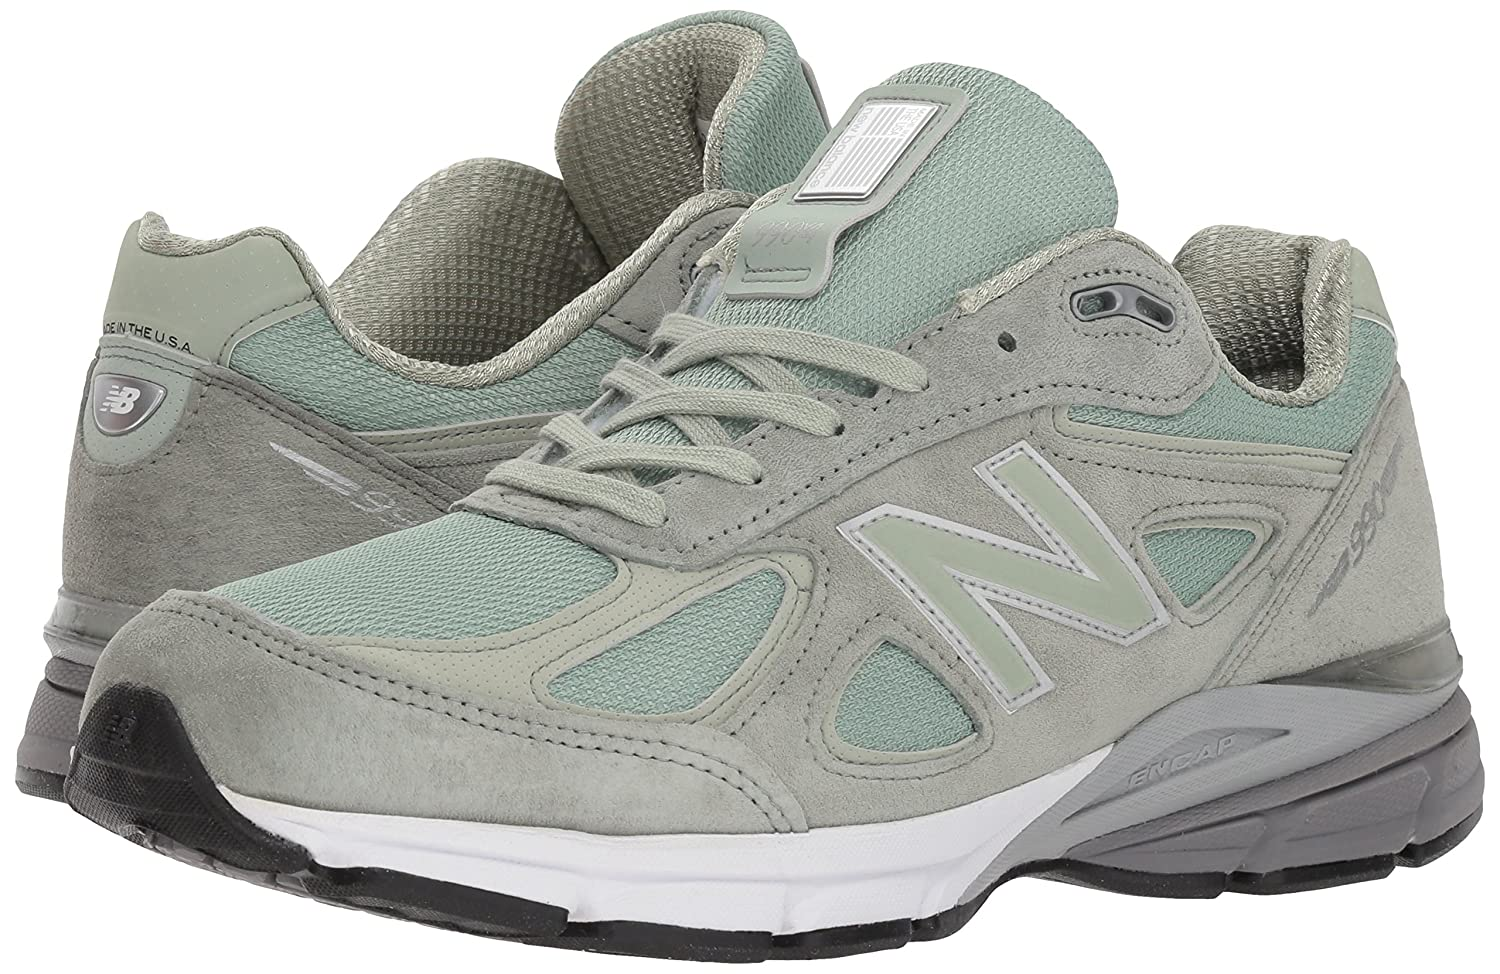 New-Balance-990-990v4-Classicc-Retro-Fashion-Sneaker-Made-in-USA thumbnail 101